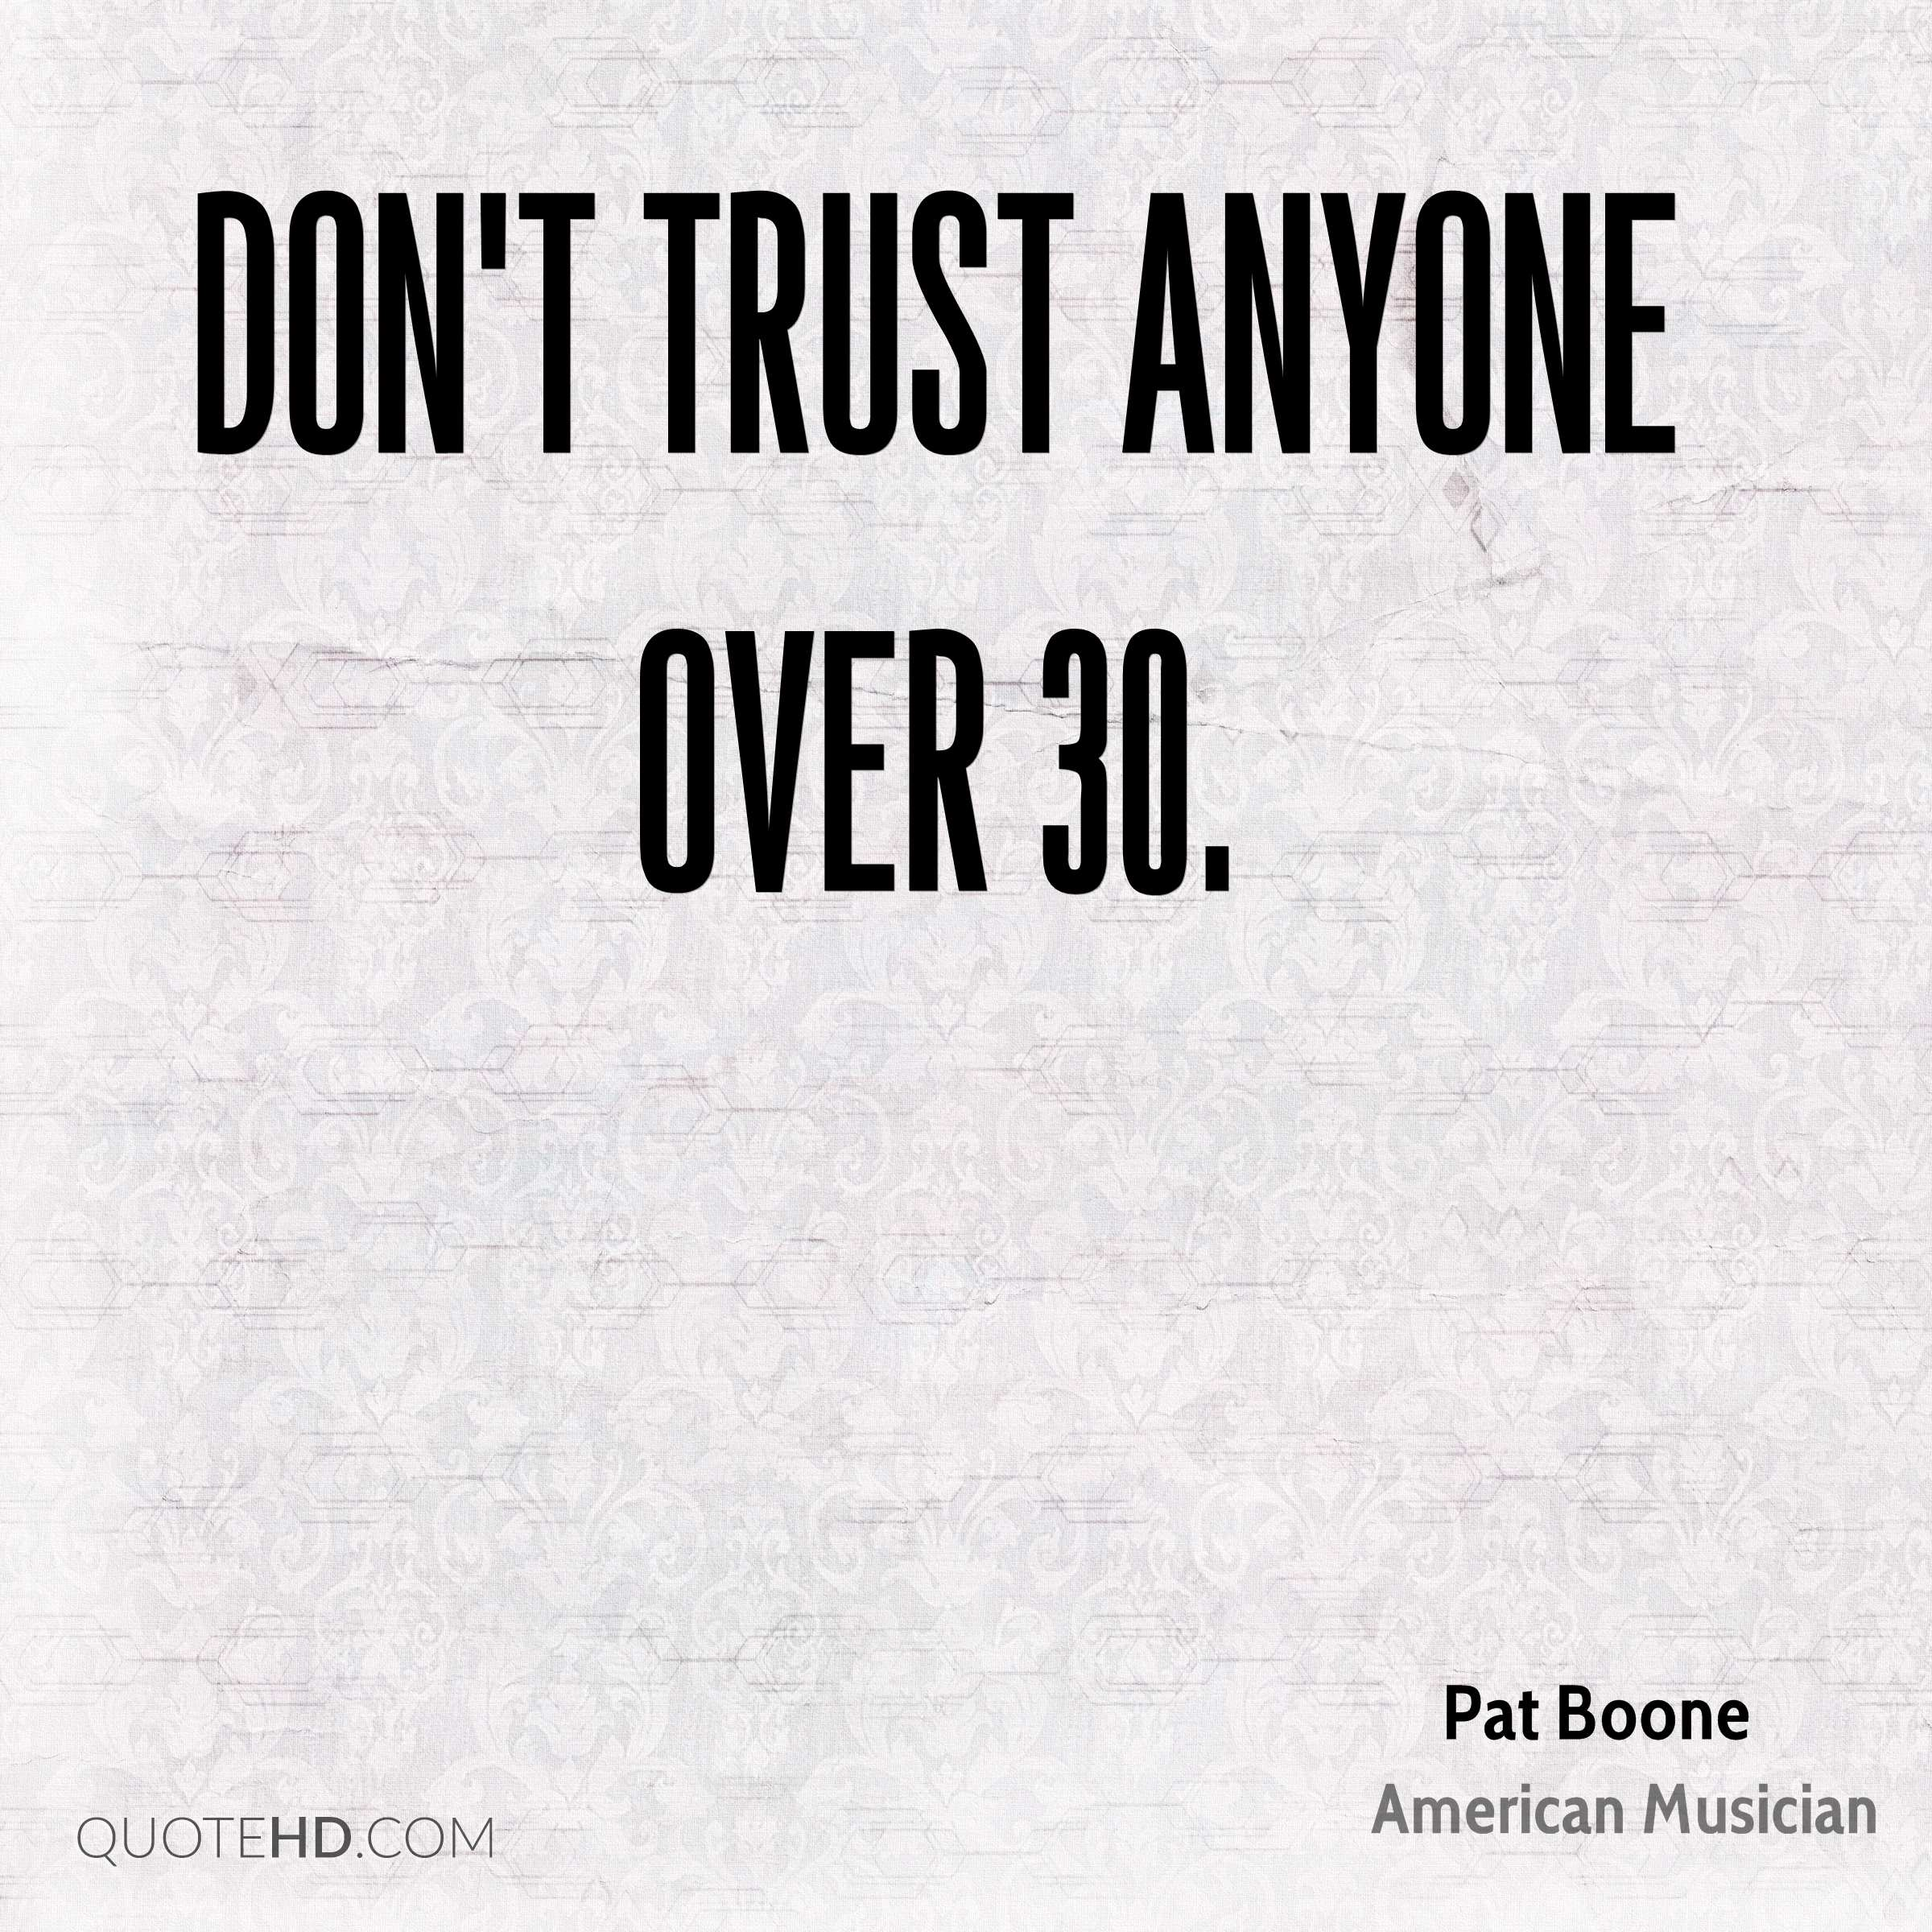 Don't trust anyone over 30.